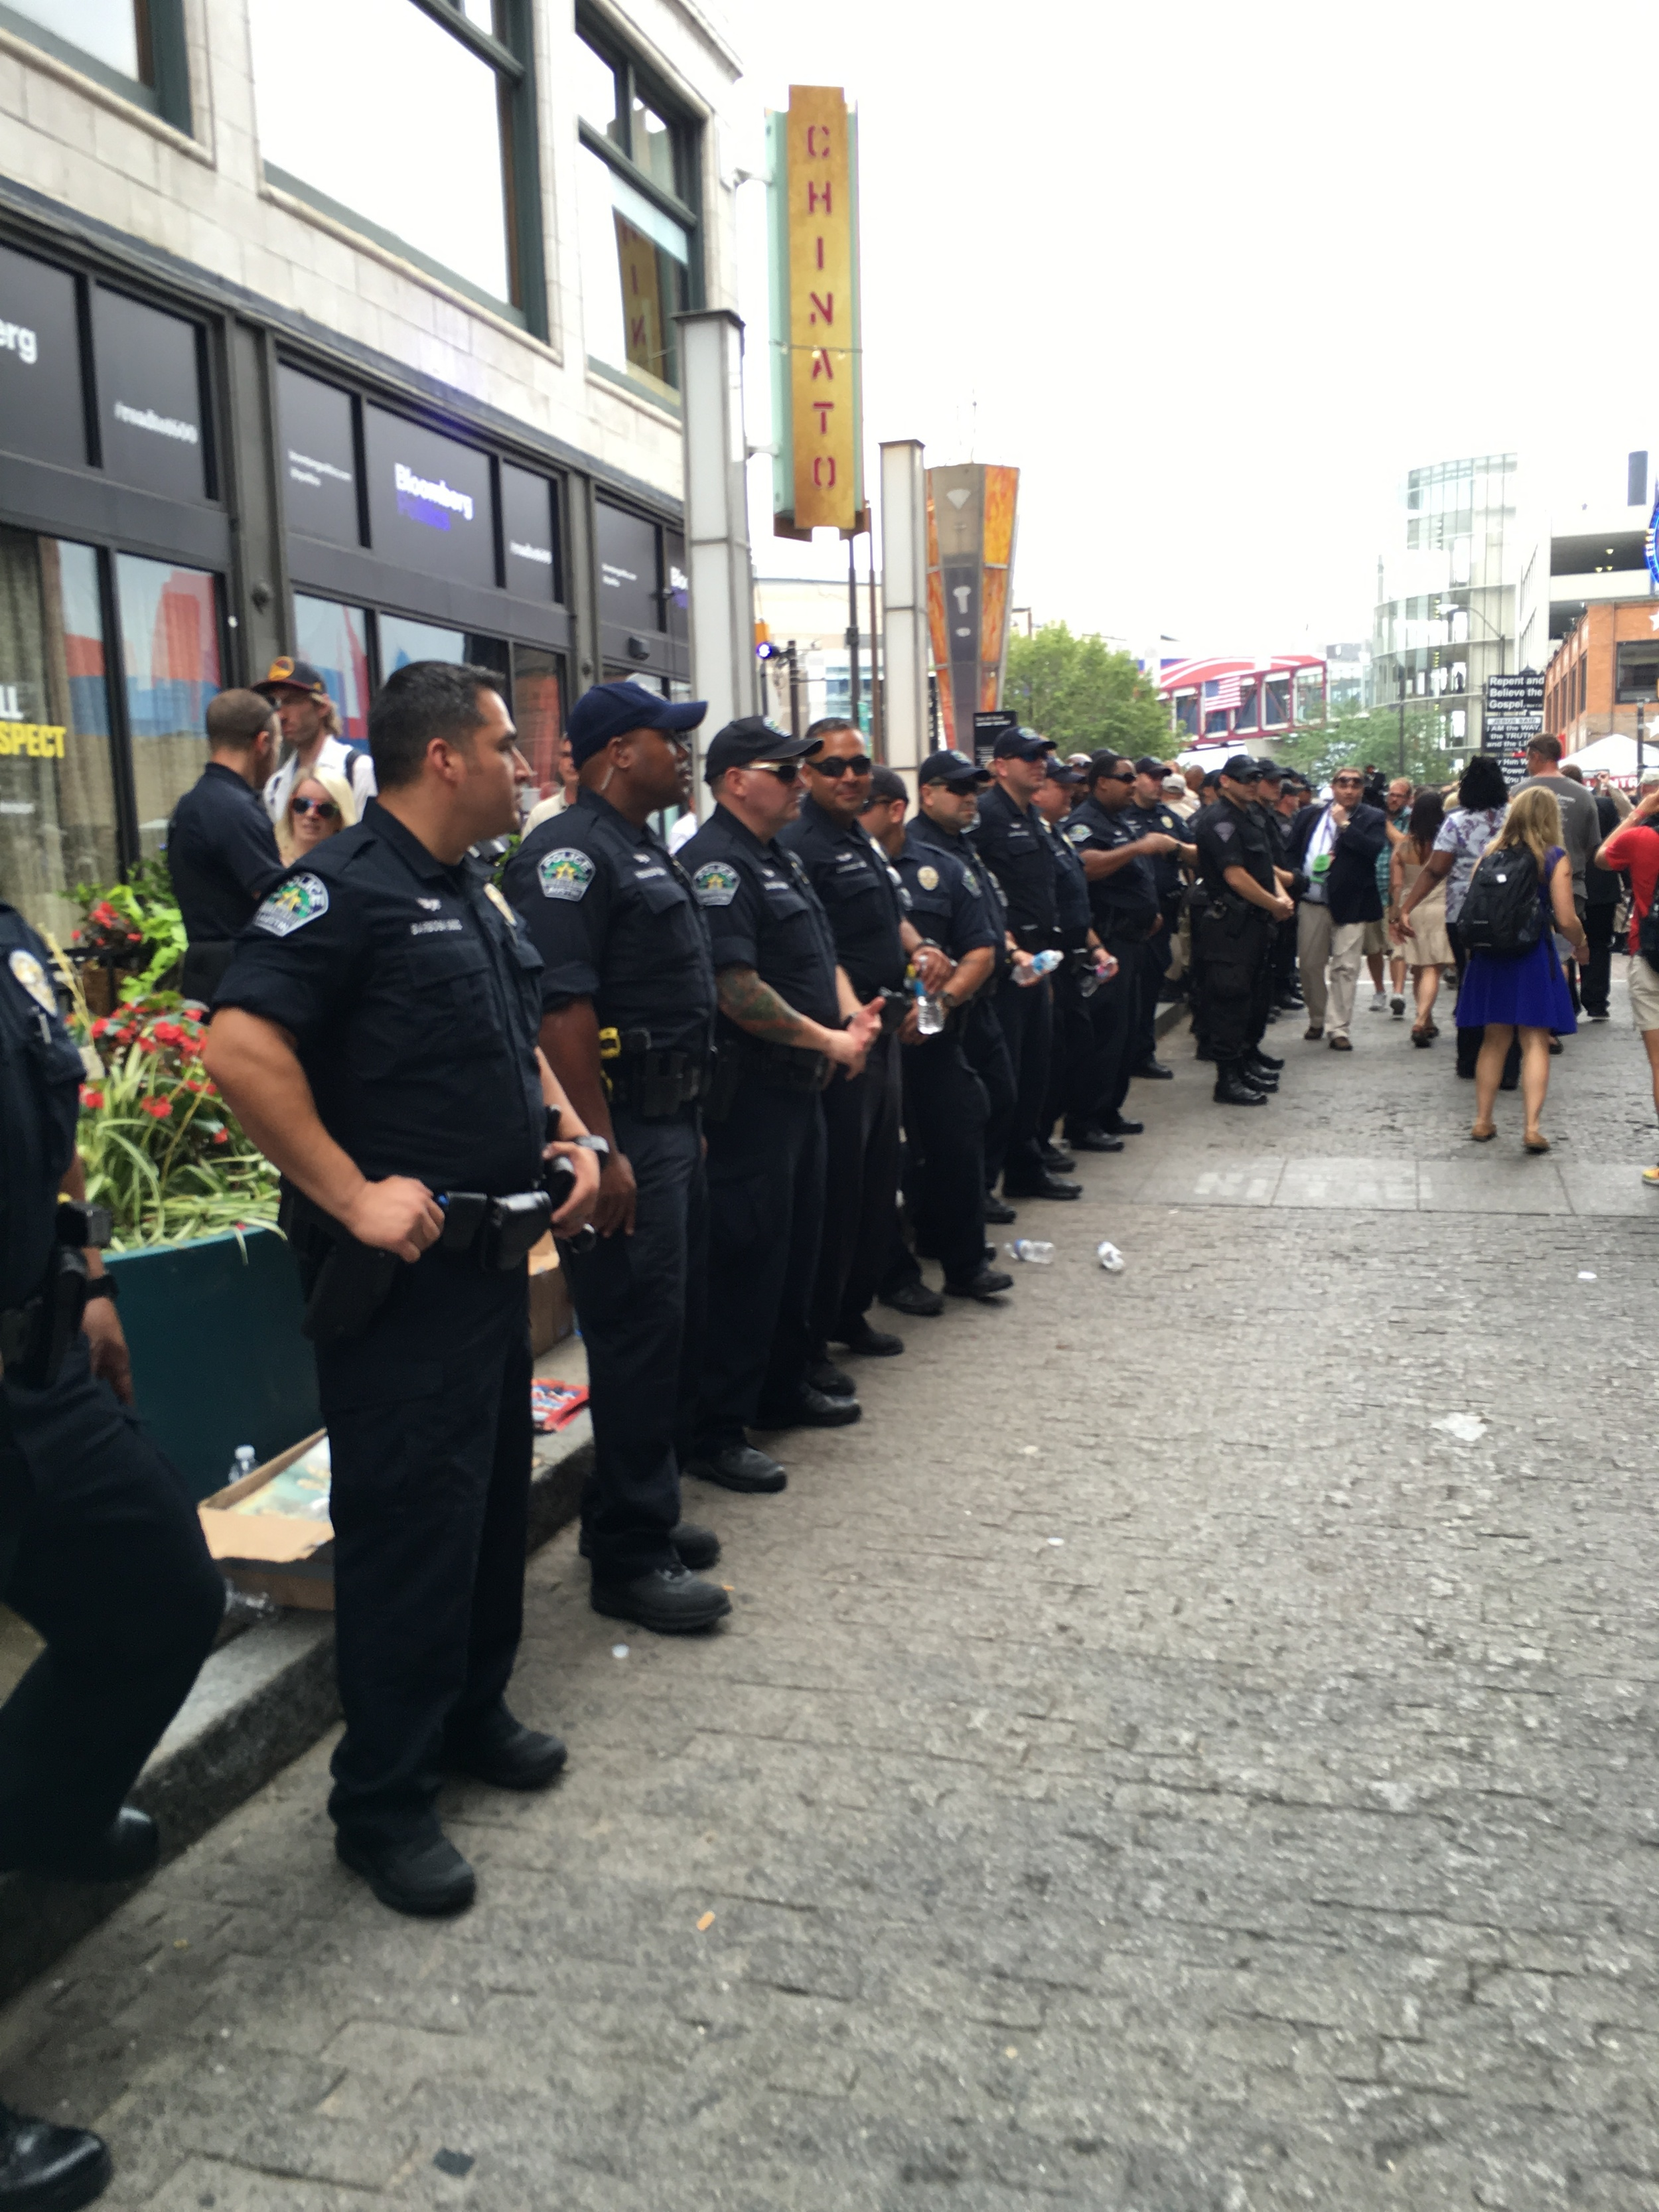 The line of police officers at the RNC